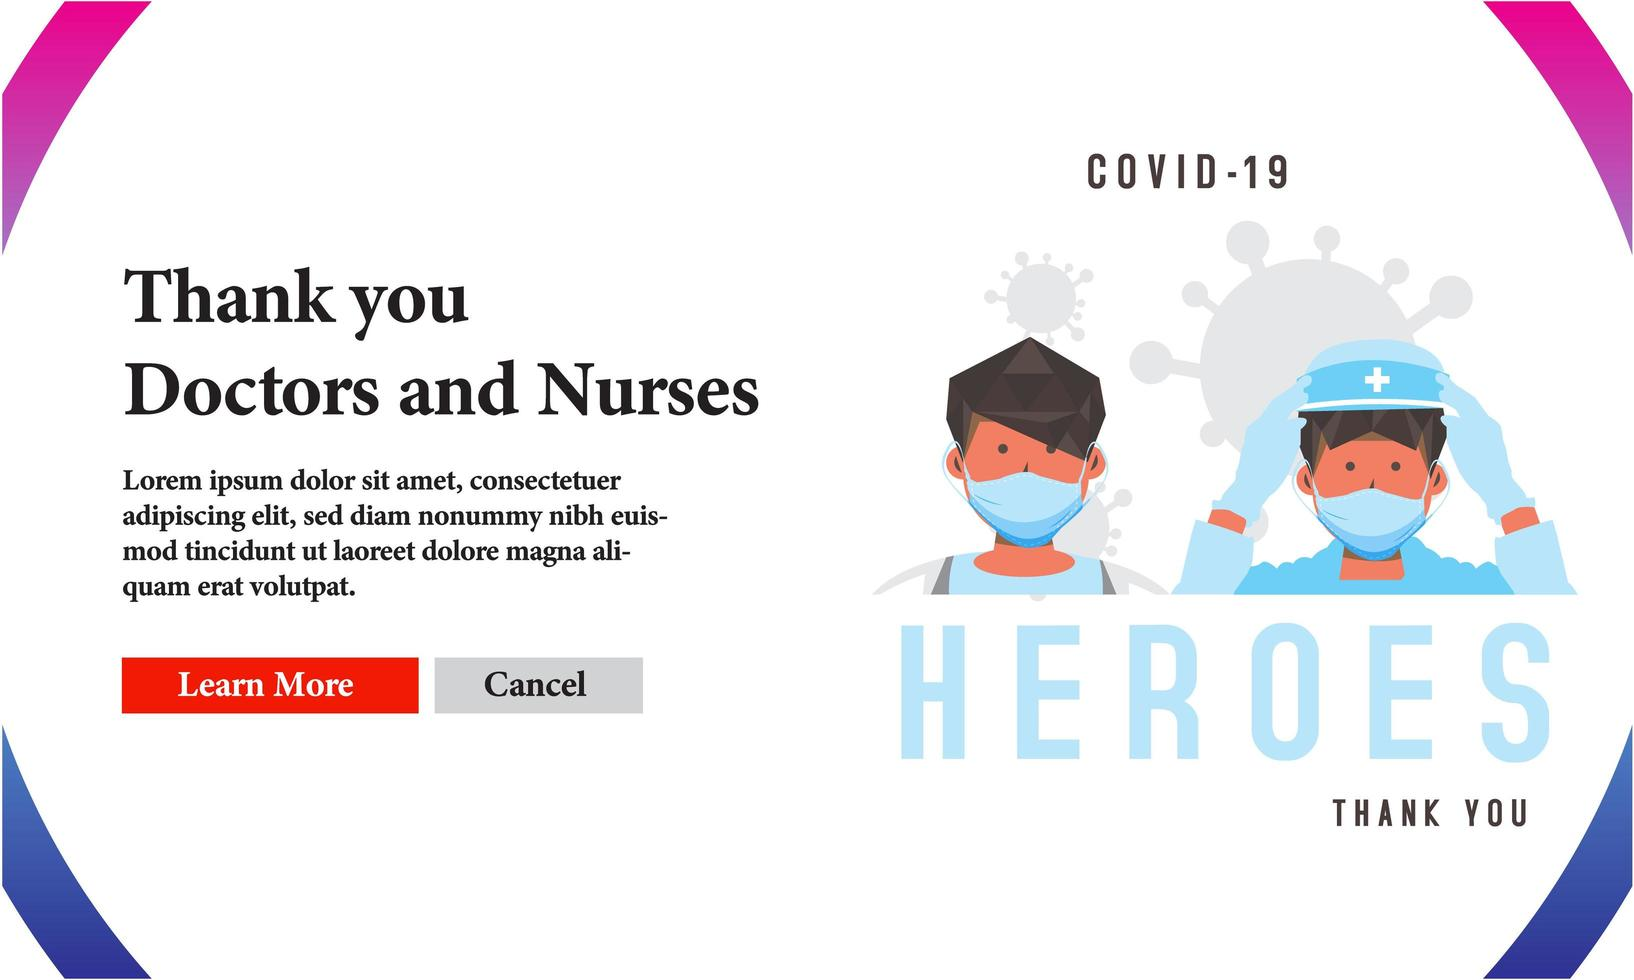 Thank you medical heroes Covid-19 banner design vector